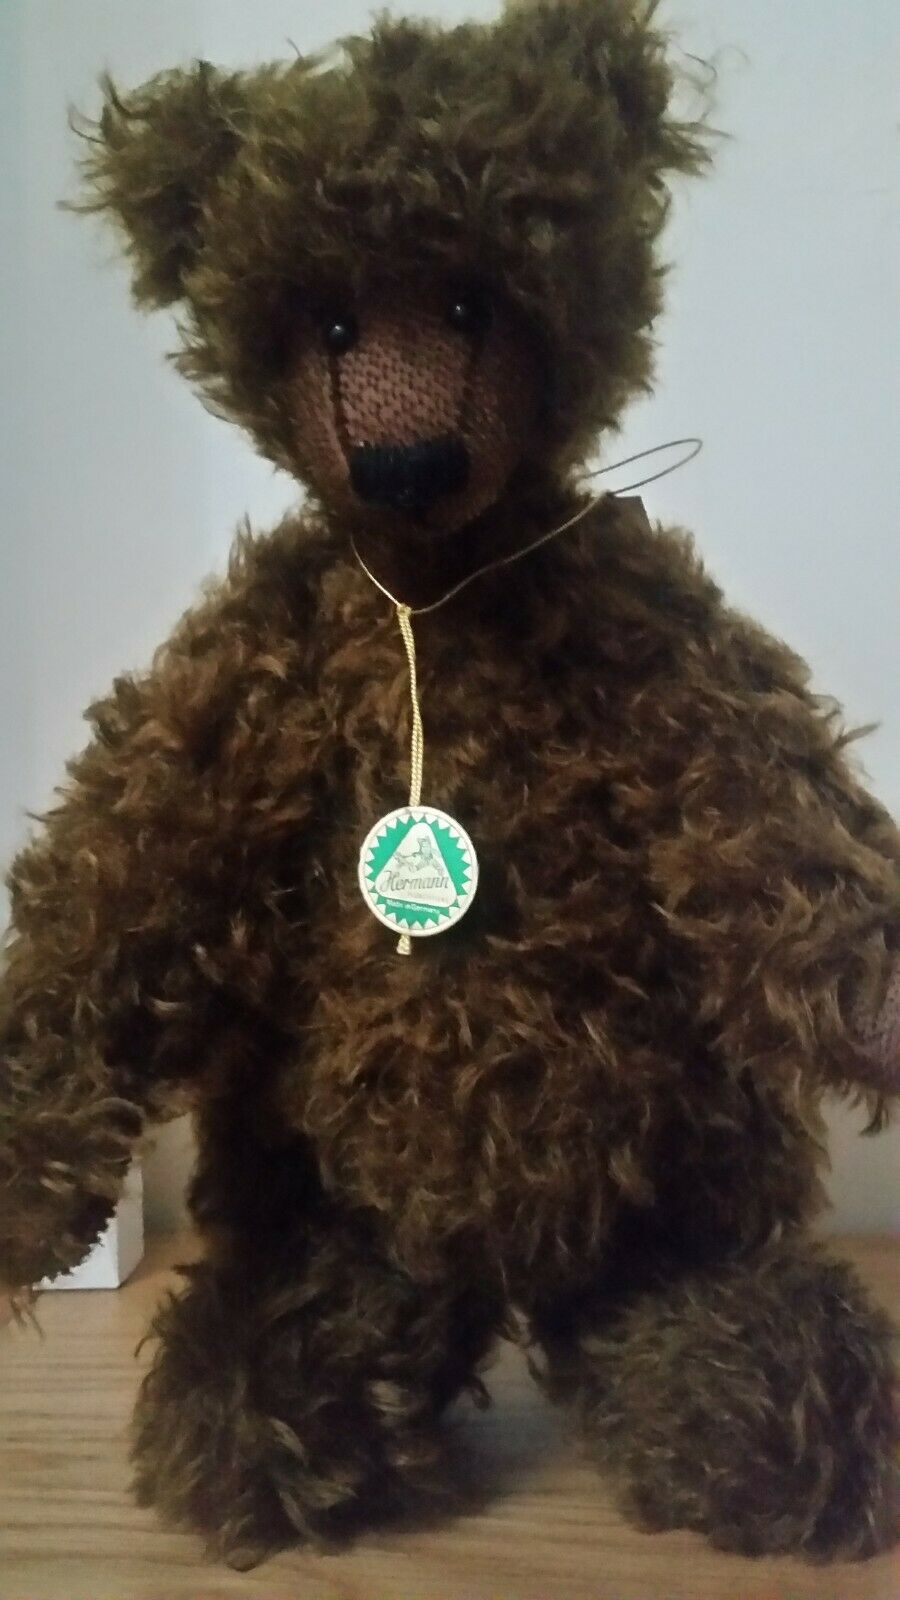 JEMAS  HERMANN MOHAIR BEAR  LIMITED EDITION NUMBER 100 of 500